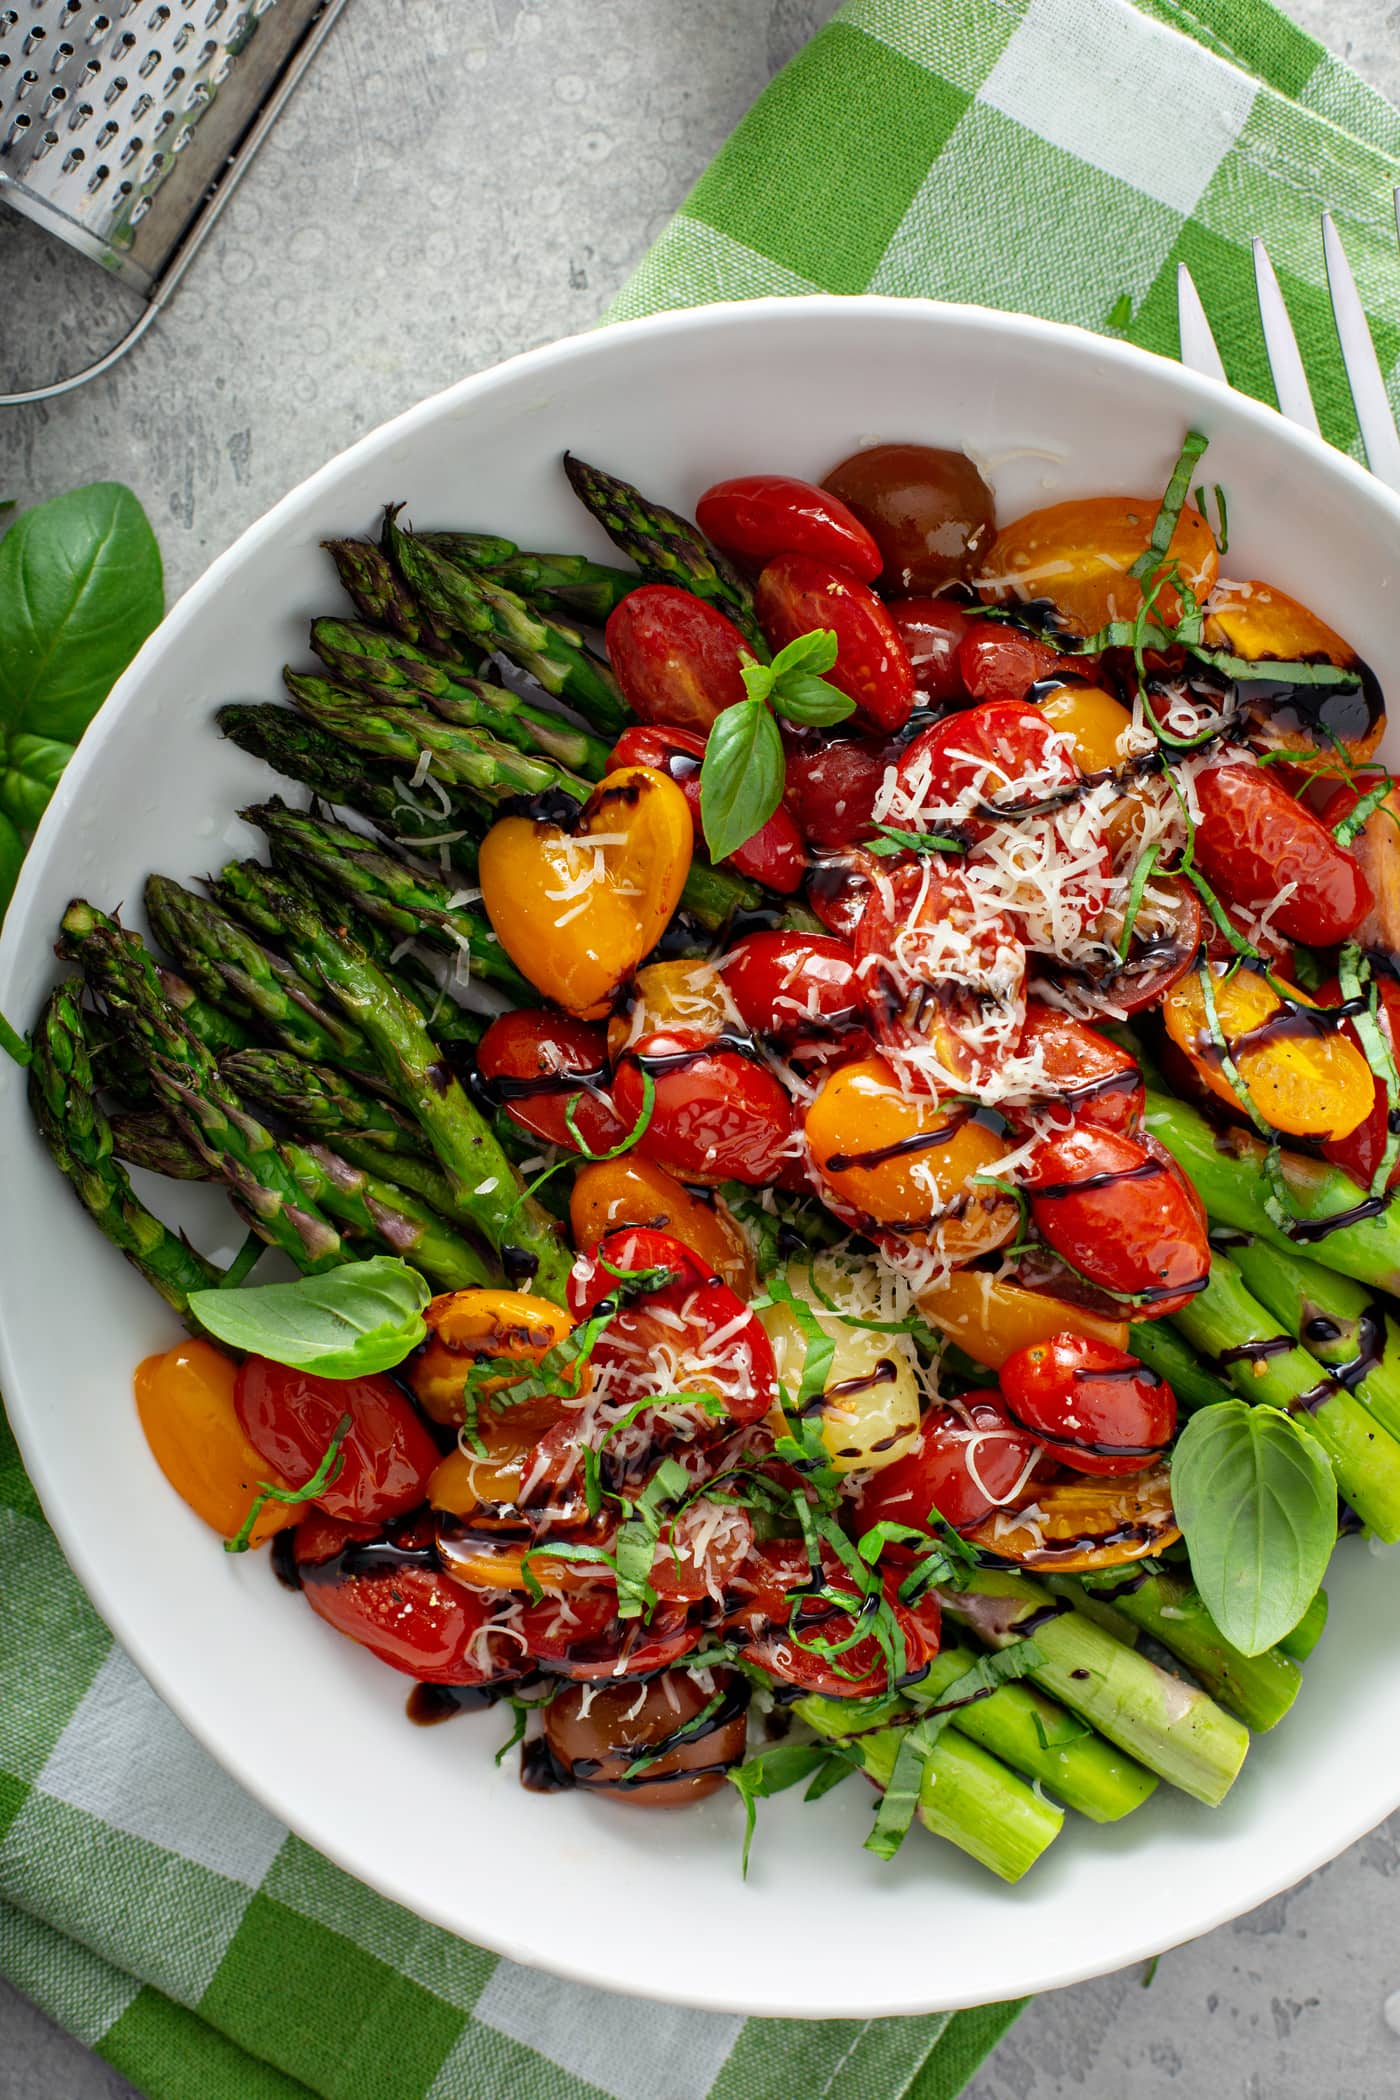 A serving dish with balsamic glazed roasted tomatoes and asparagus. The green roasted asparagus is covered with sliced red and yellow tomatoes with a drizzle of balsamic glaze over the top. Grated Parmesan cheese is sprinkled over it all. The serving dish is sitting on a green and white checked cloth.